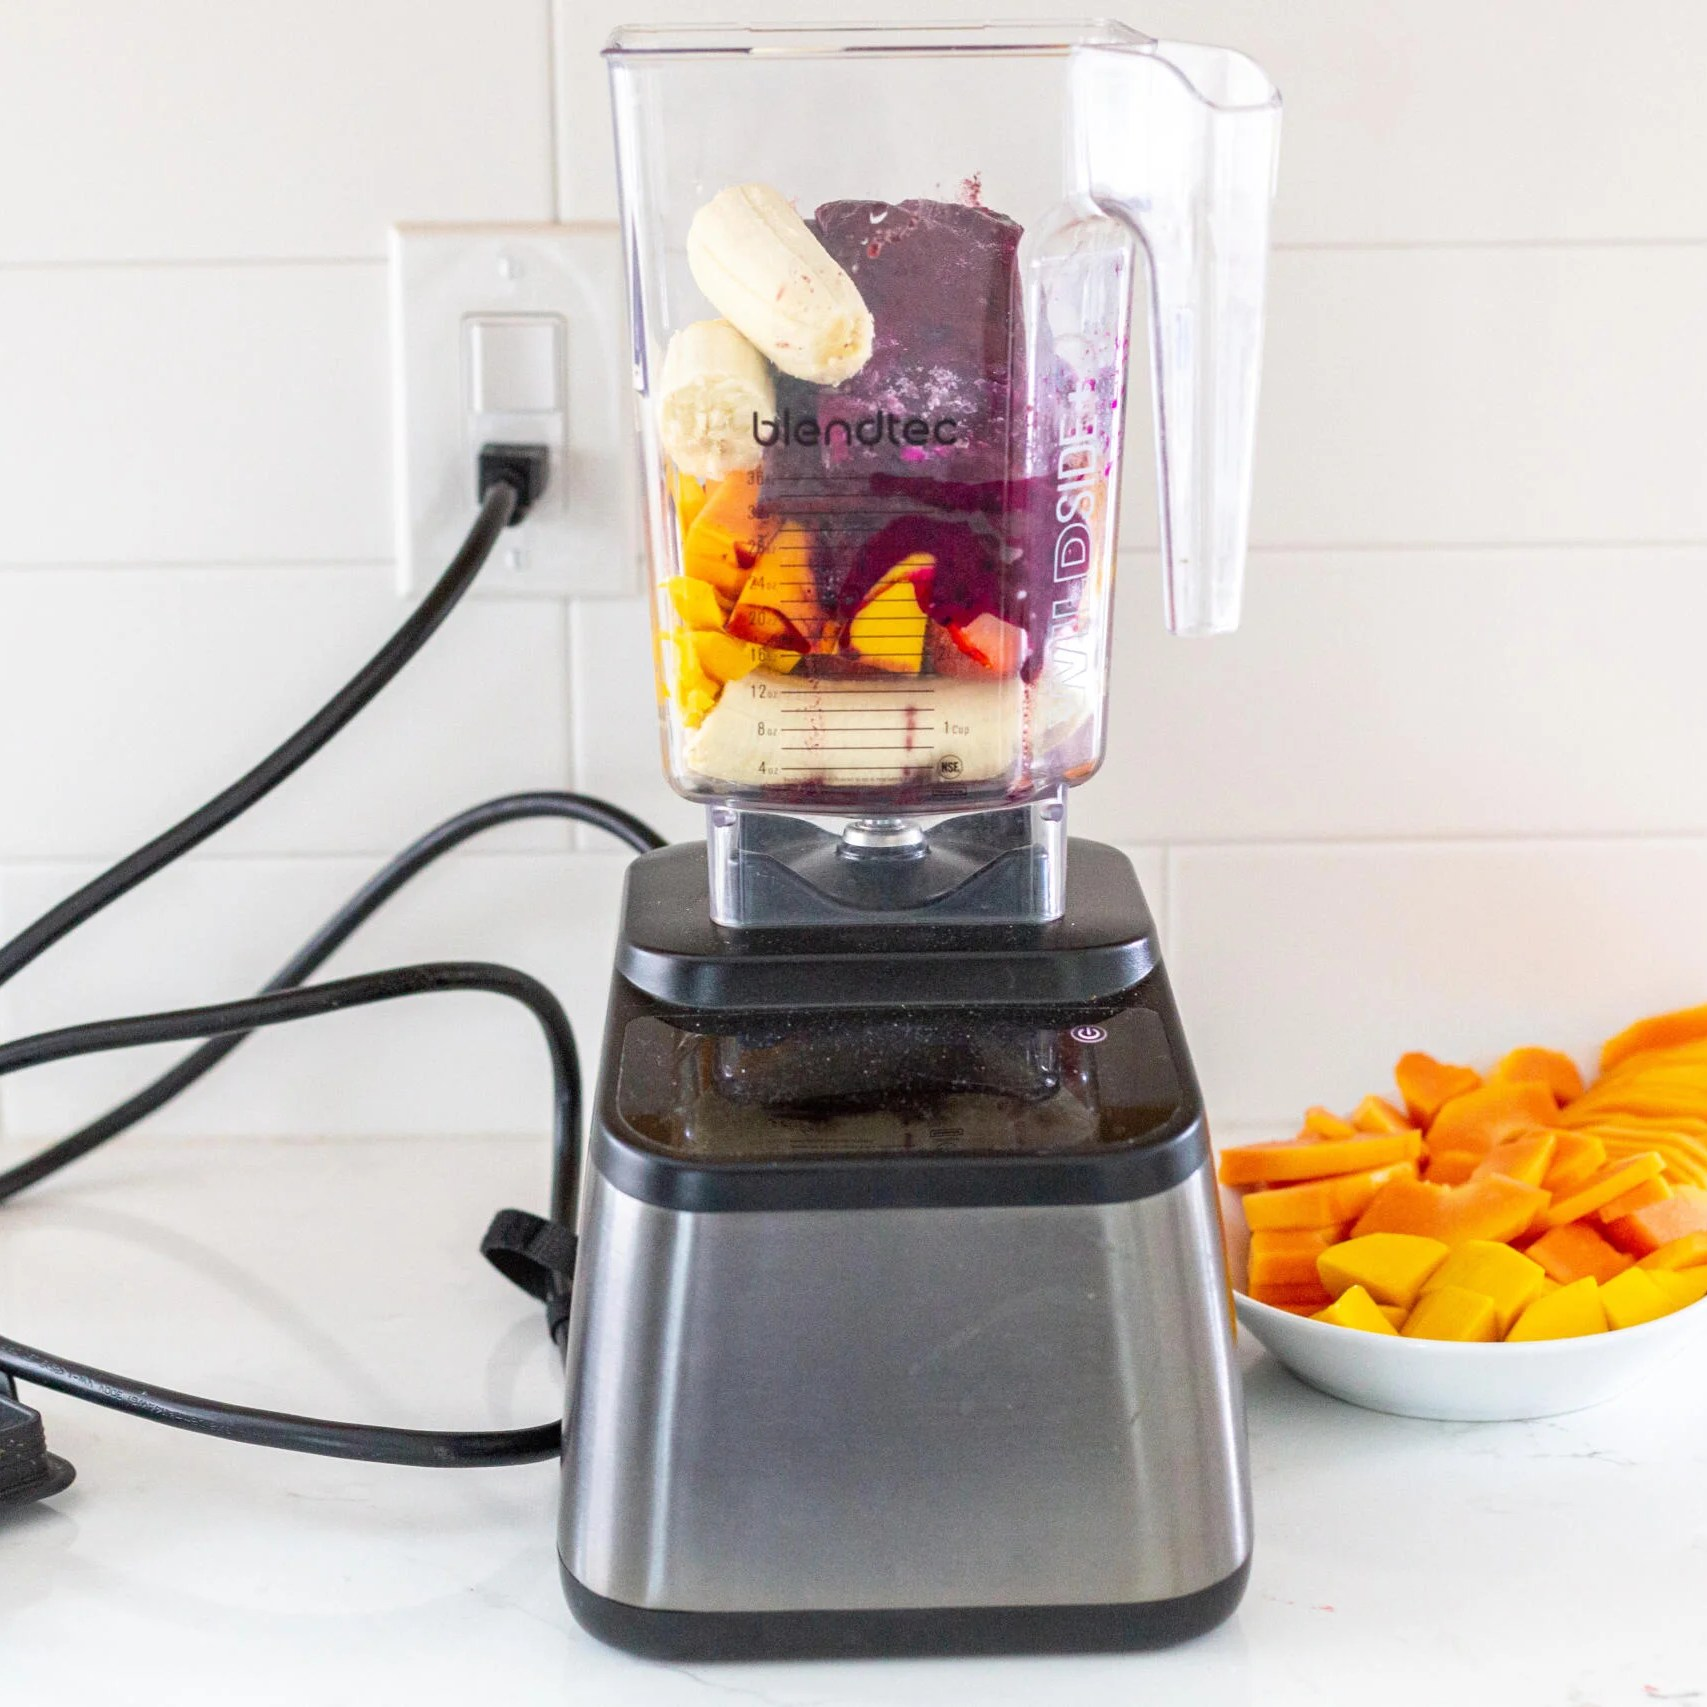 Acai fruits in a blender